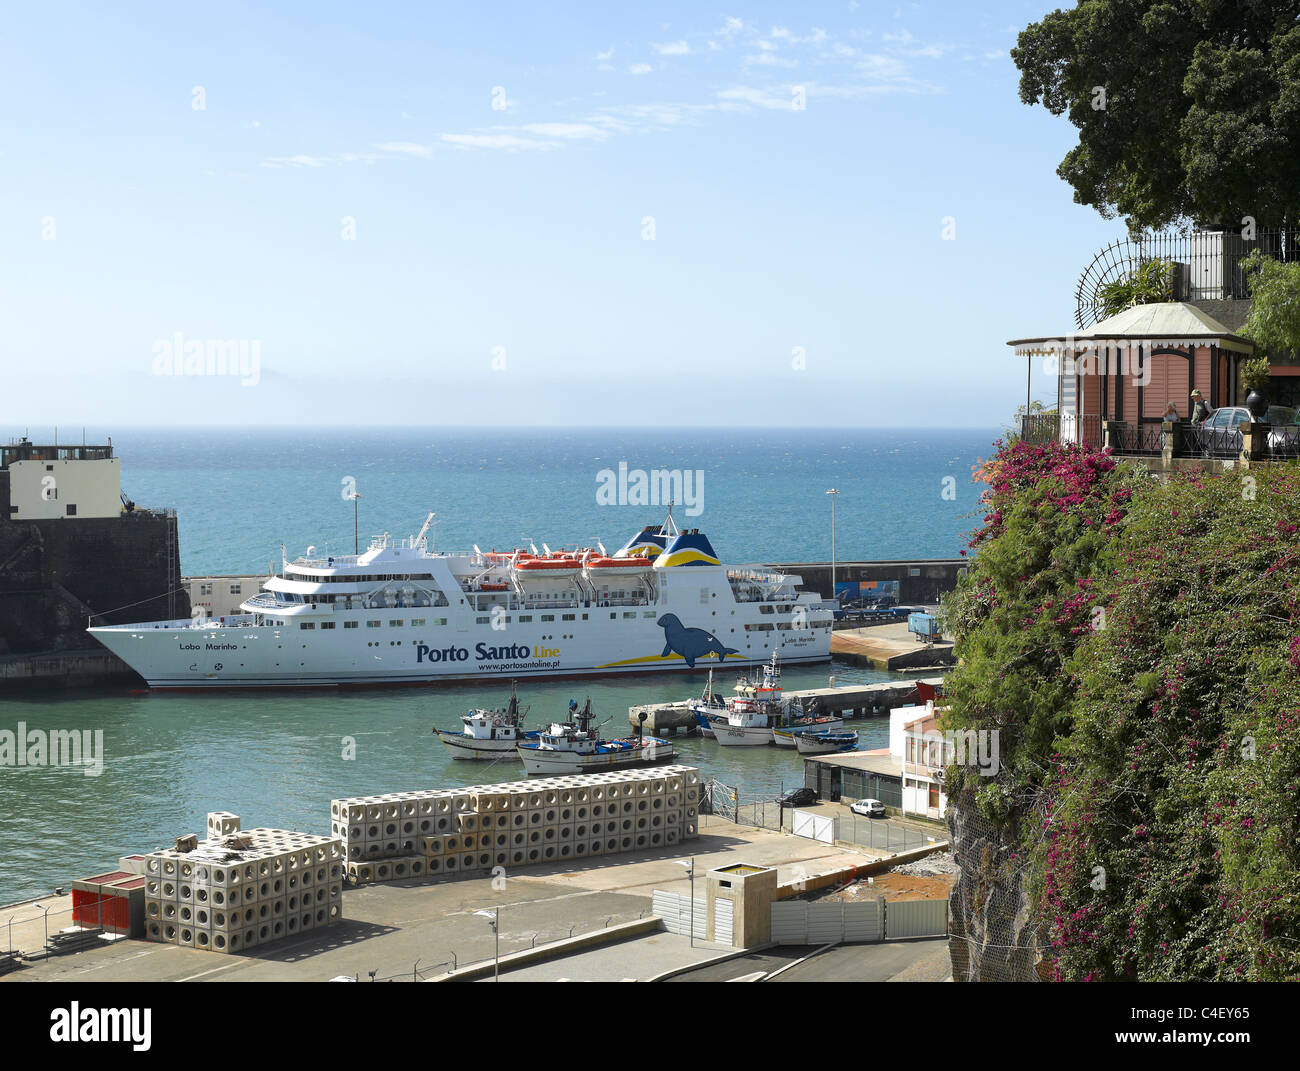 Porto Santo Ferry in Funchal harbour Funchal Madeira Portugal EU Europe Stock Photo